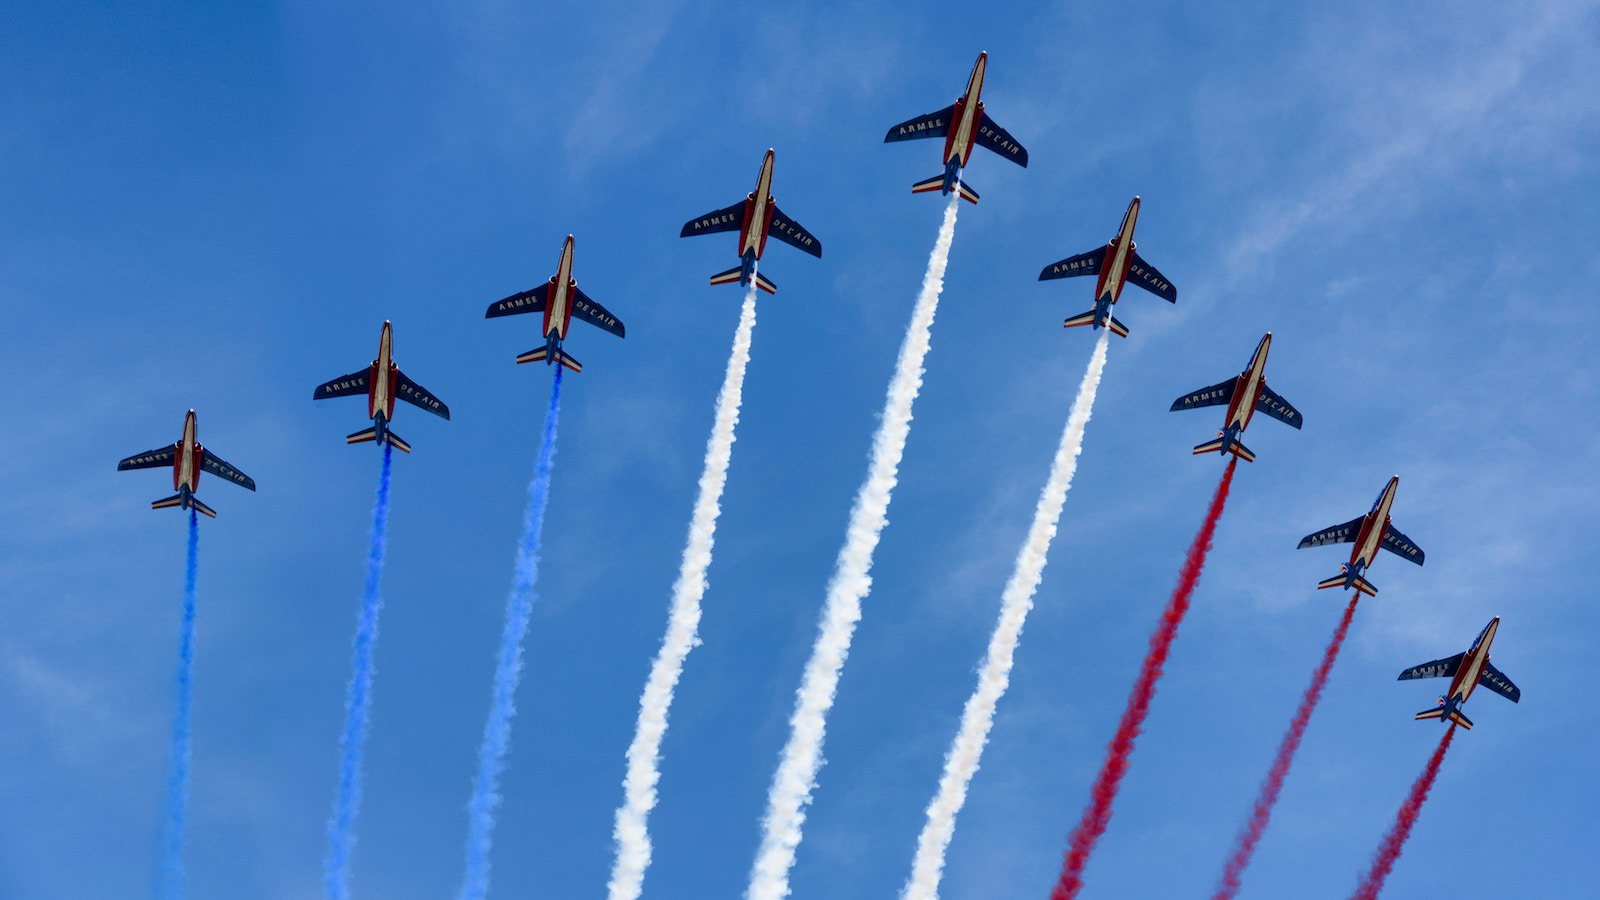 Joe desousa 329586 unsplash july 4th jet planes